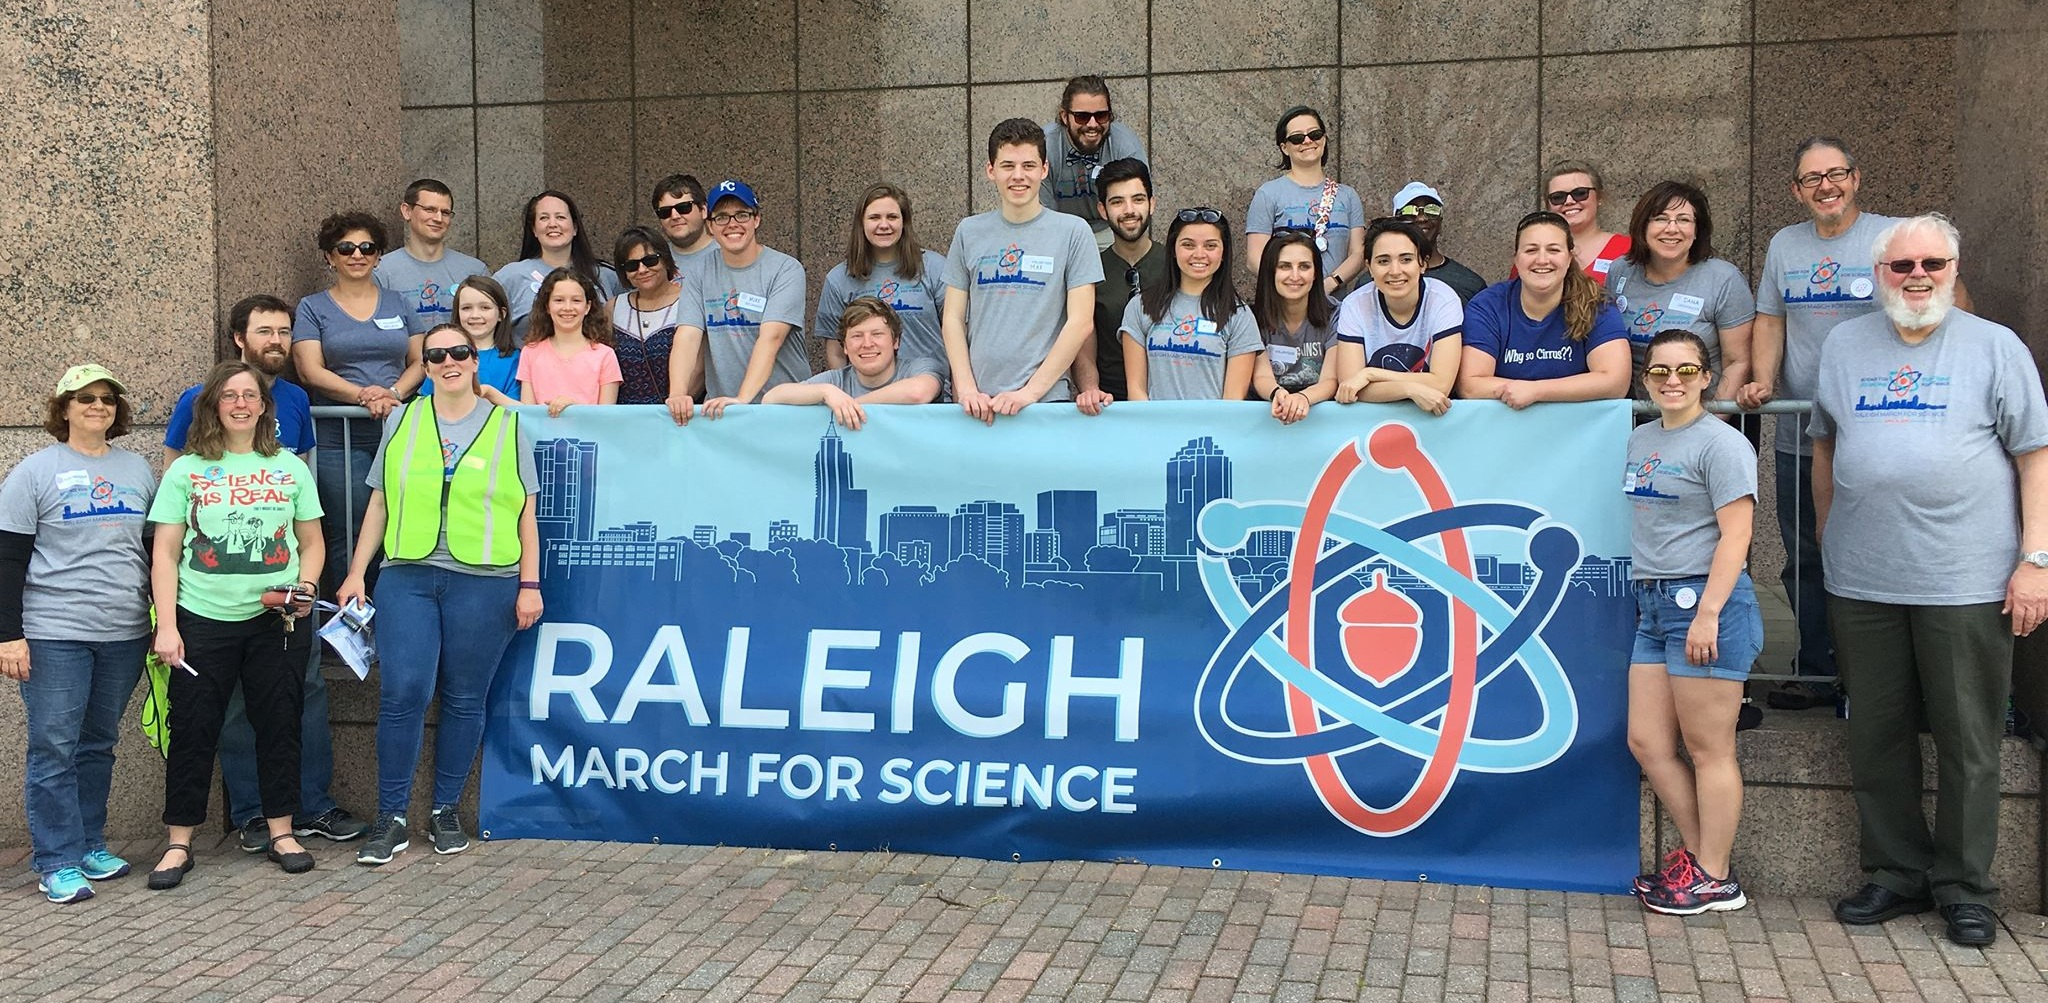 The 2018 Raleigh March for Science volunteer team.